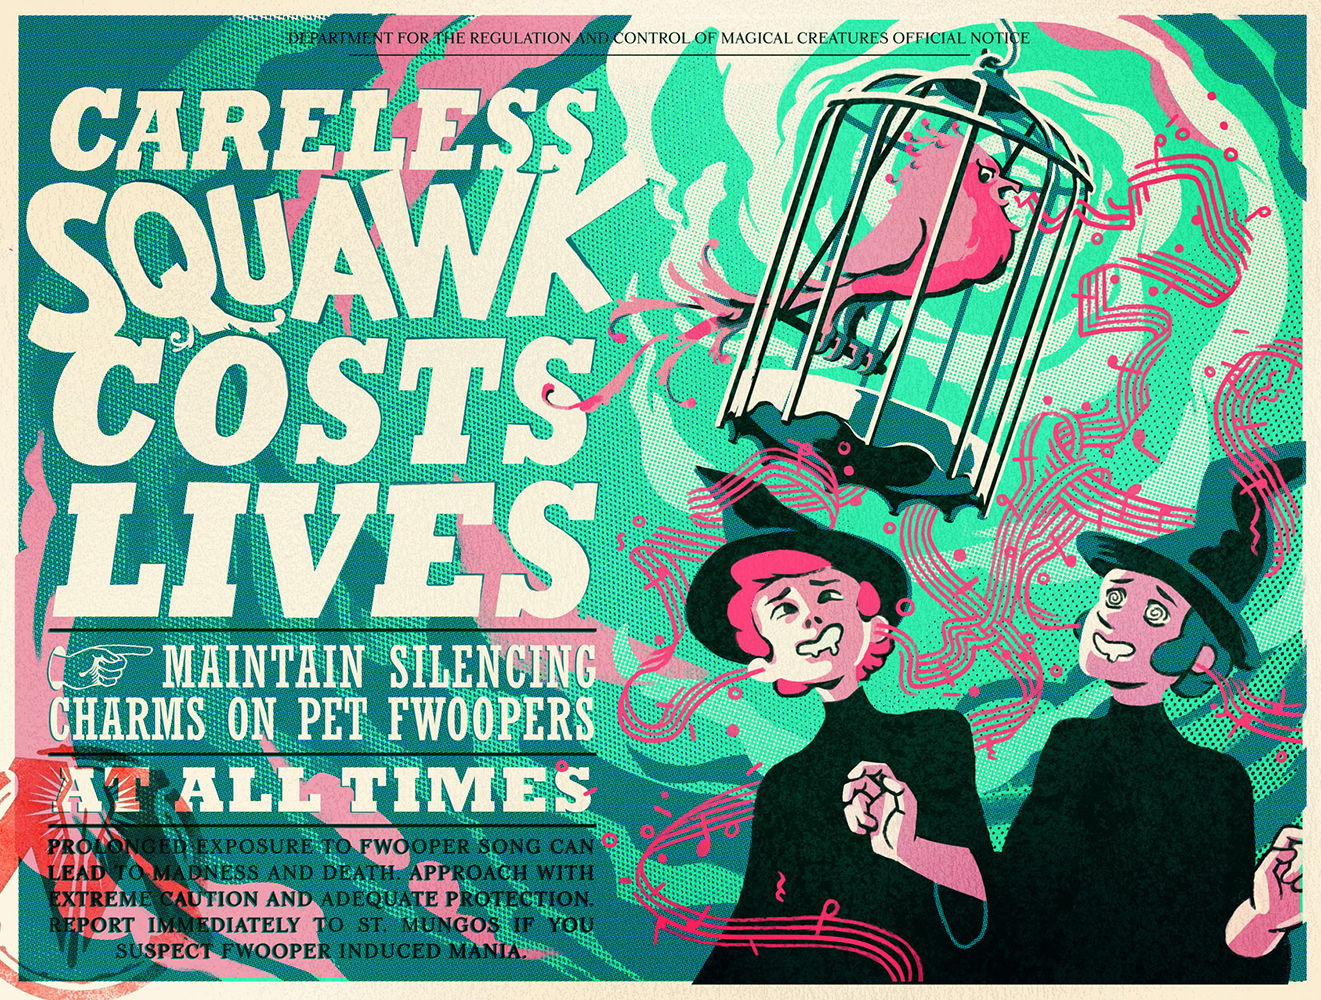 File:Careless Squawk Costs Lives.png